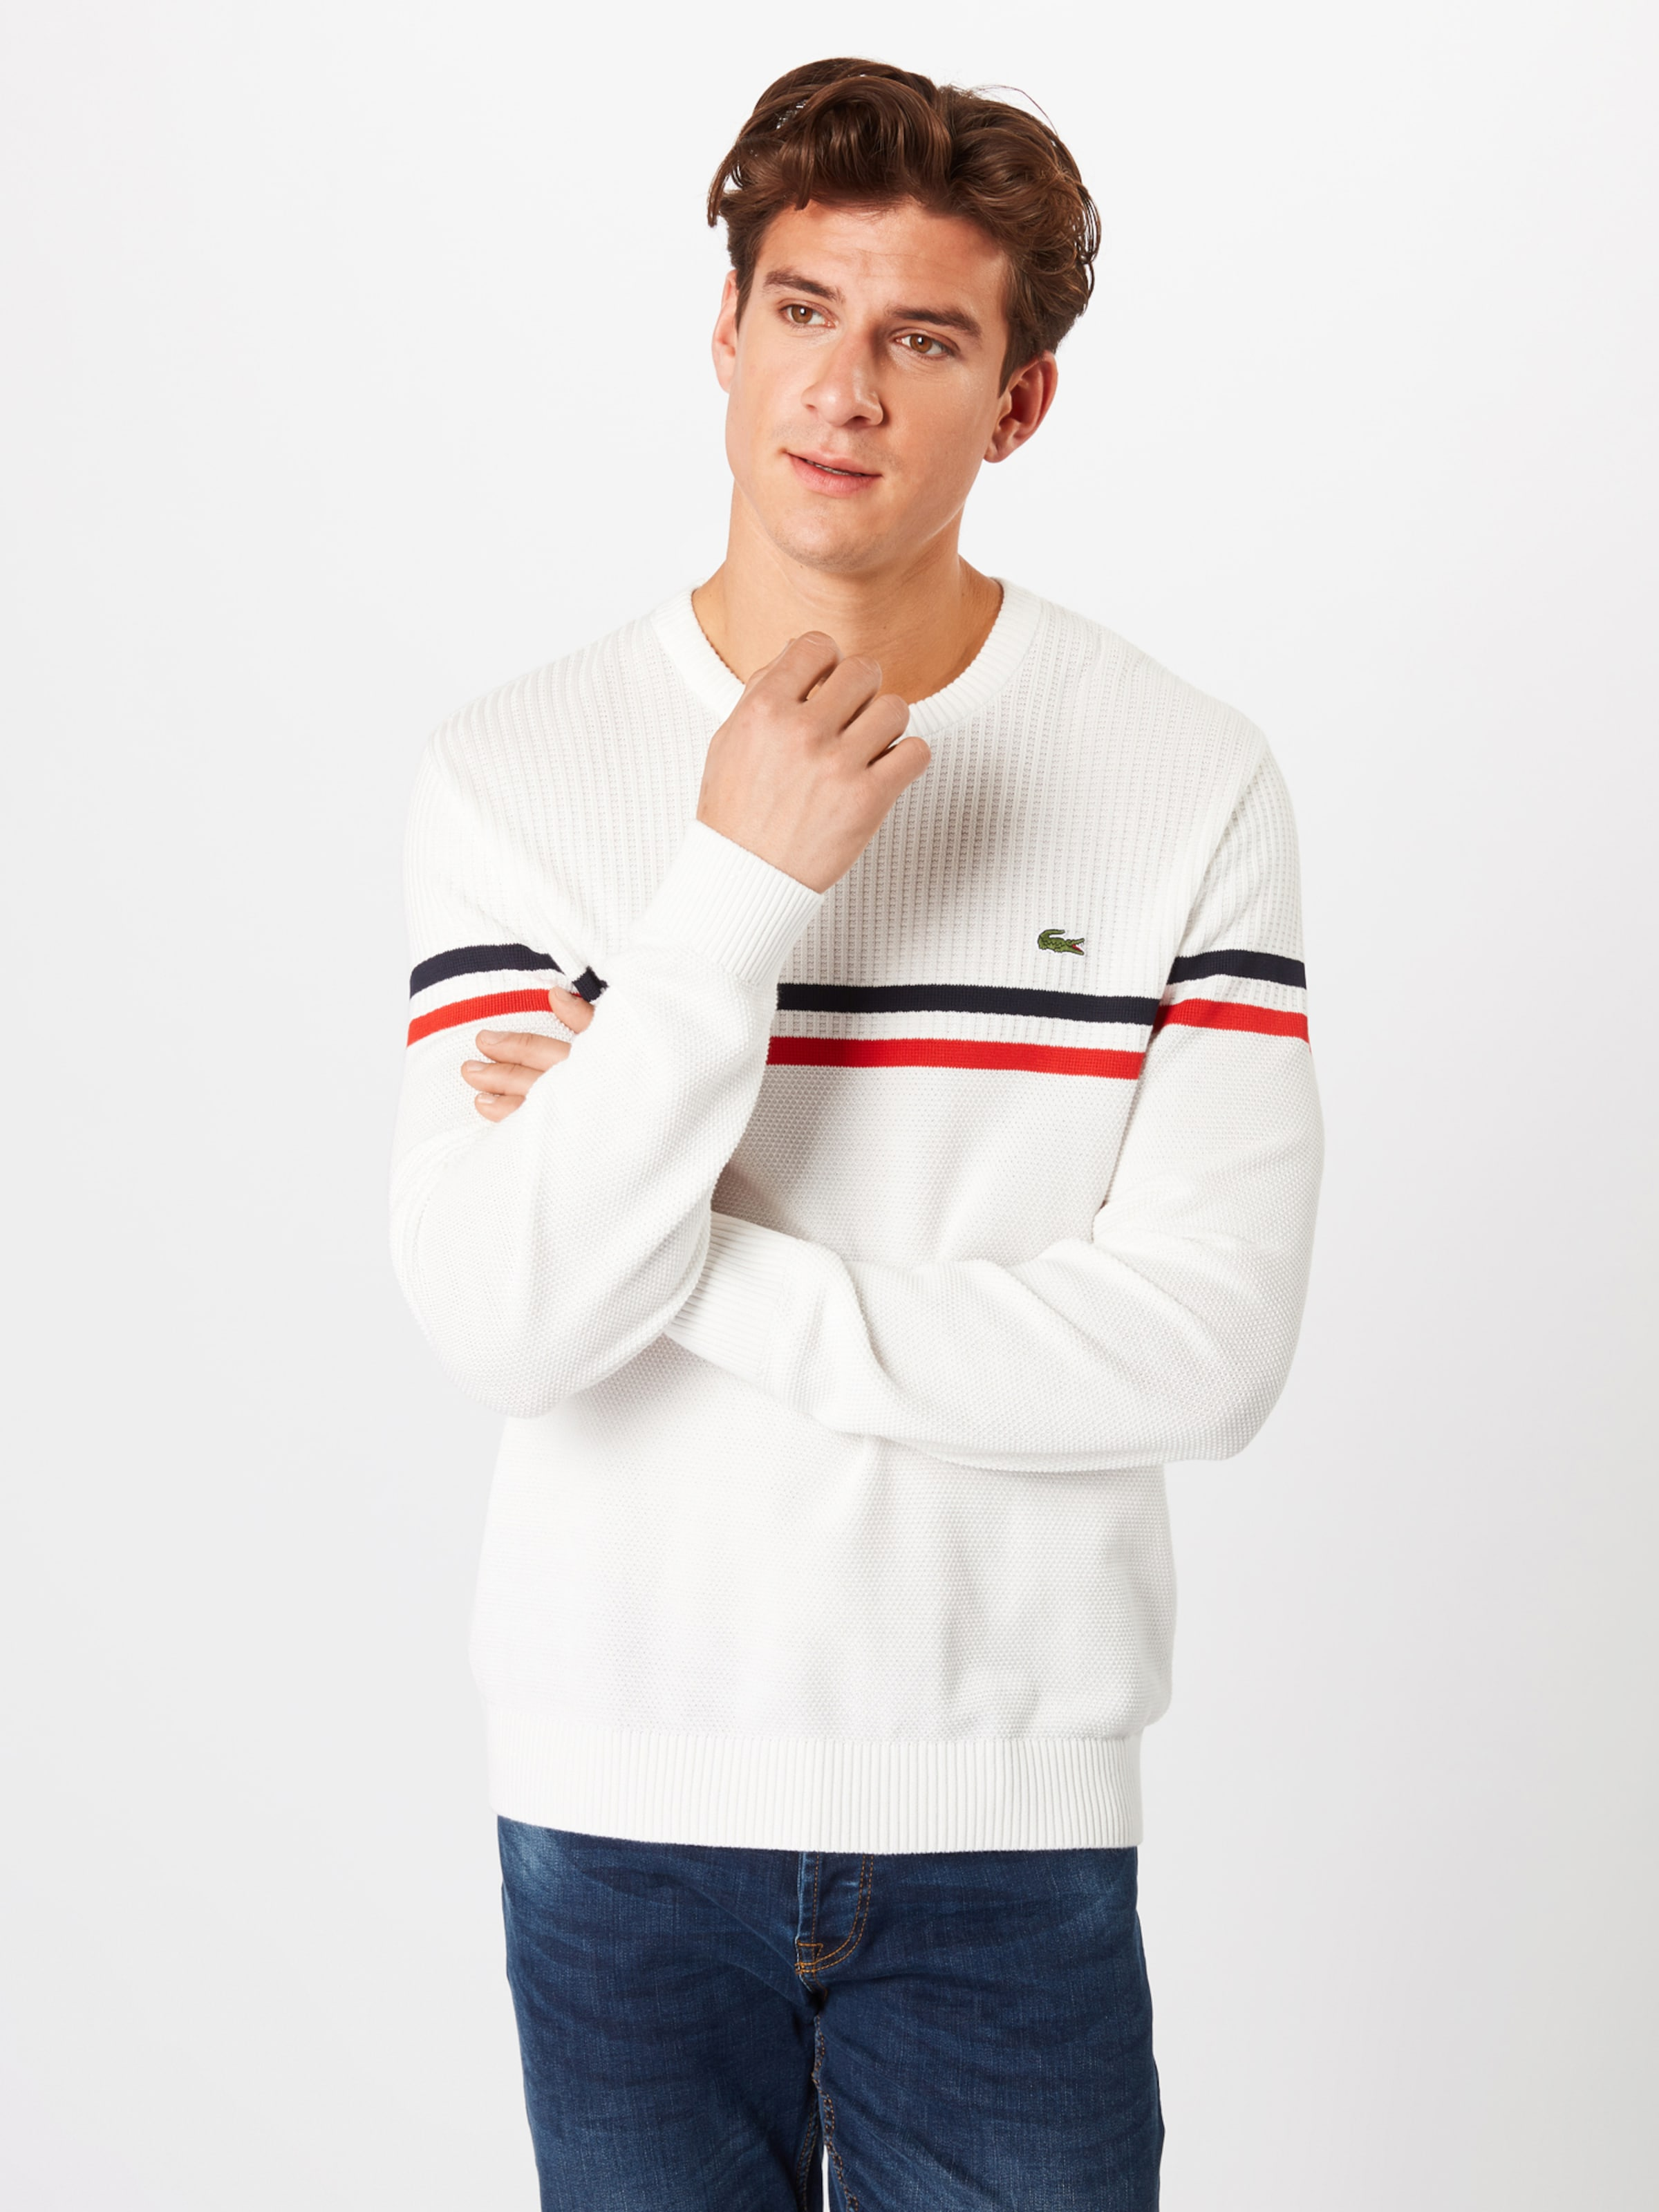 'tricot' Weiß BlauRot In Lacoste Pullover 7yYbf6gv